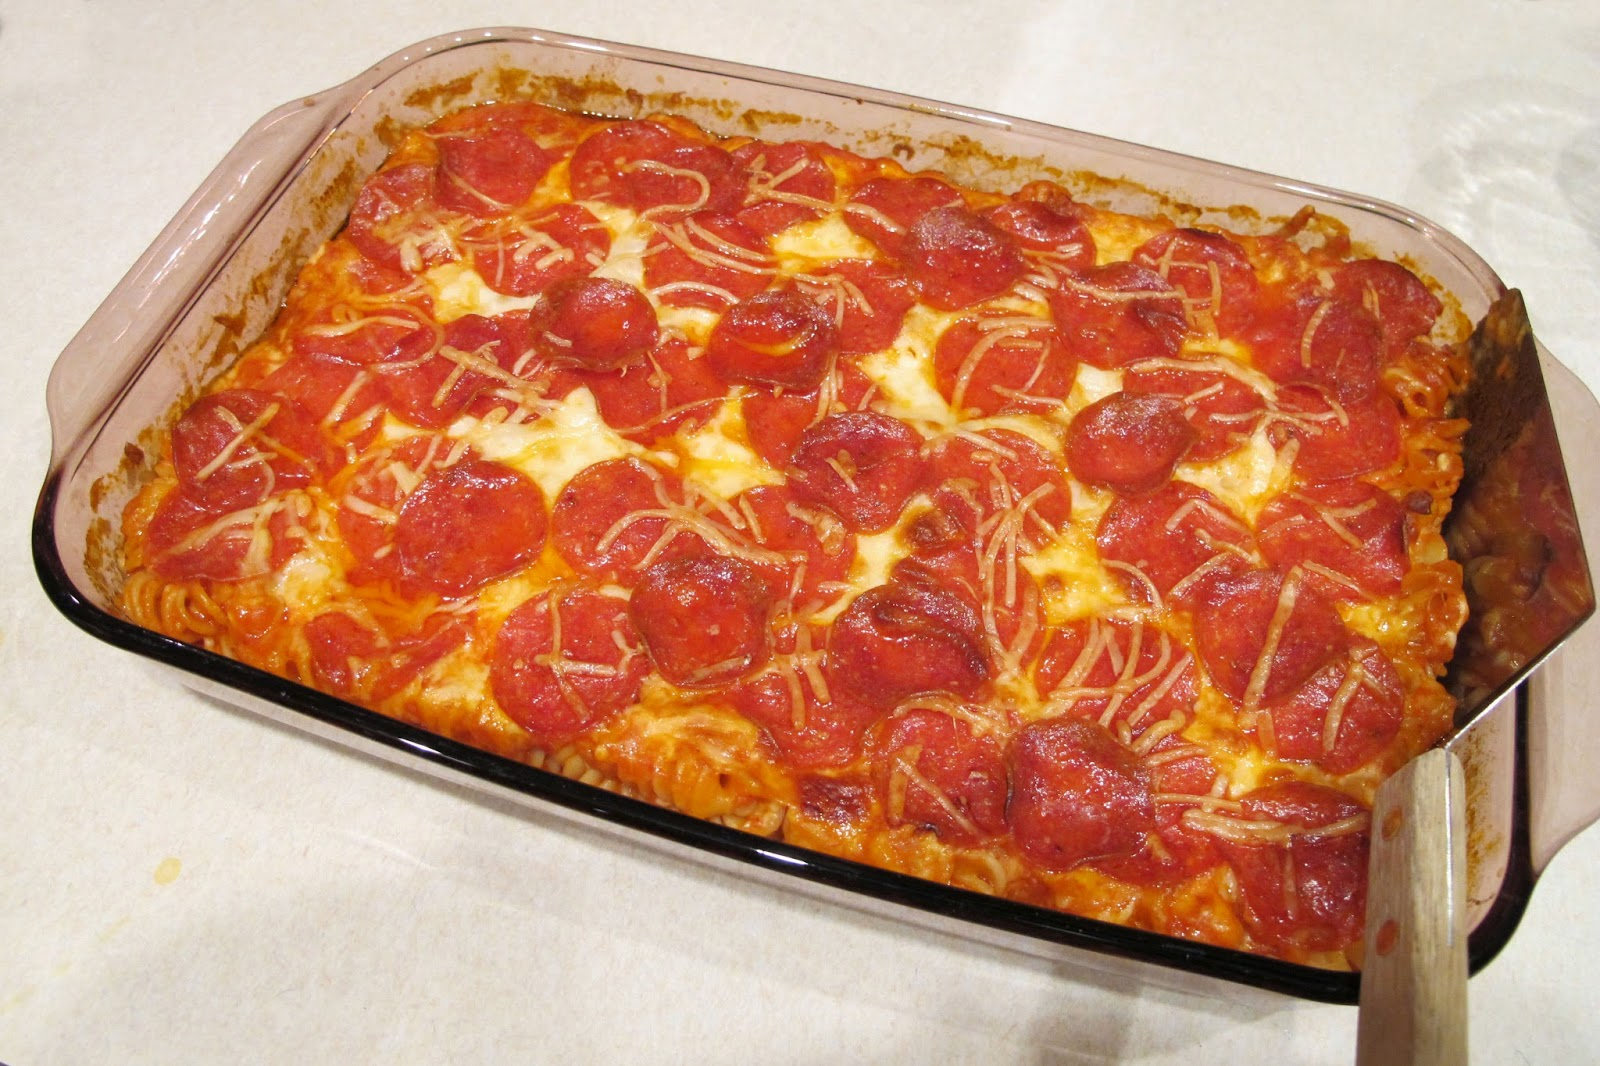 pepperoni pizza pepperoni ramen pizza pepperoni pizza monkey bread